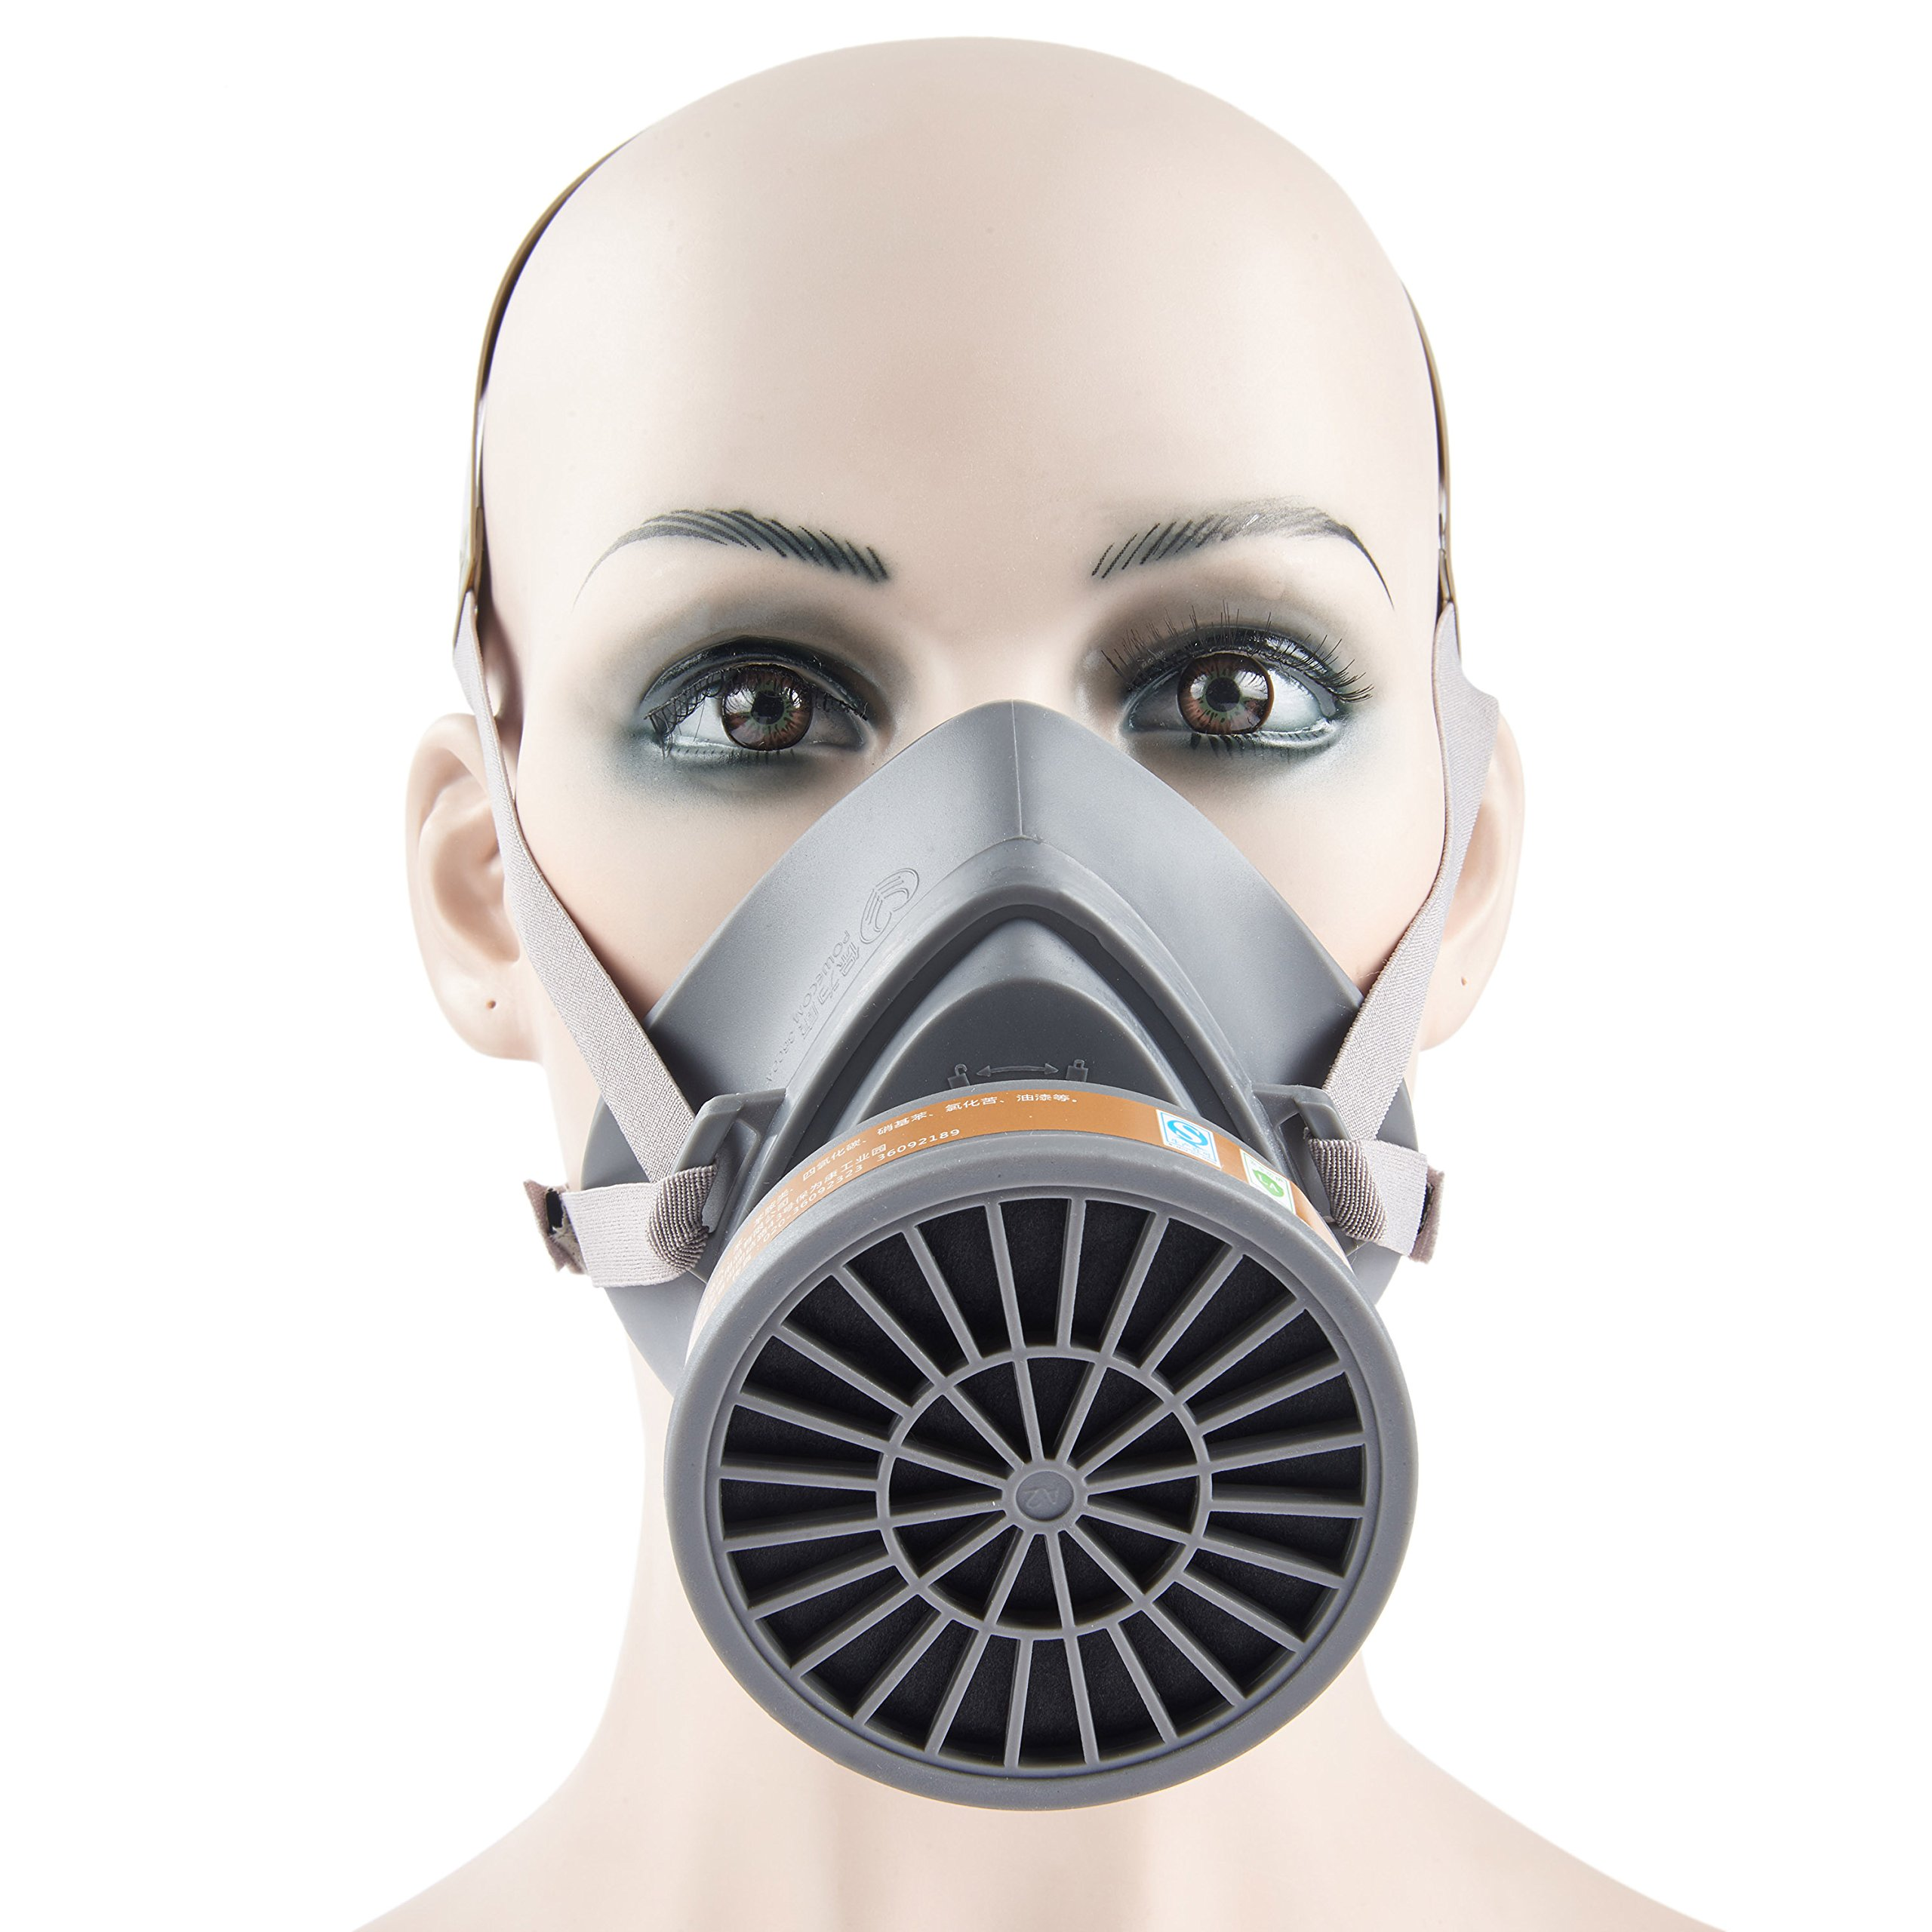 Fire Respirators Capable Anti-dust Respirator Mask Filter Industrial Paint Spraying Protective Facepiece Back To Search Resultssecurity & Protection